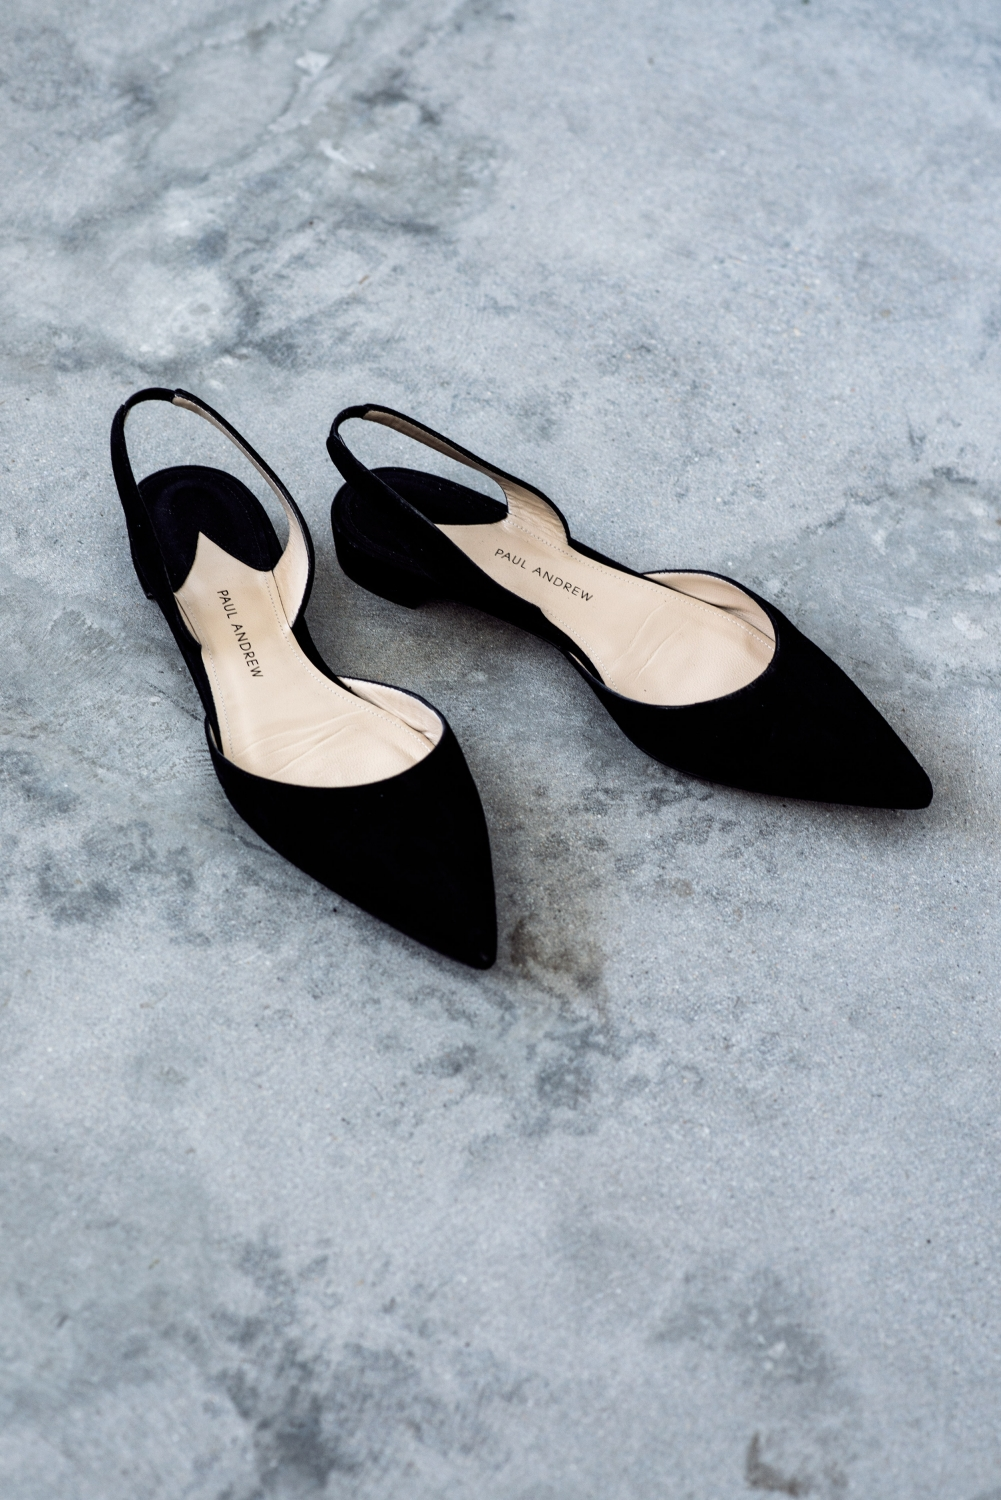 paul andrew black suede pointed black slingback flats | Harper and Harley